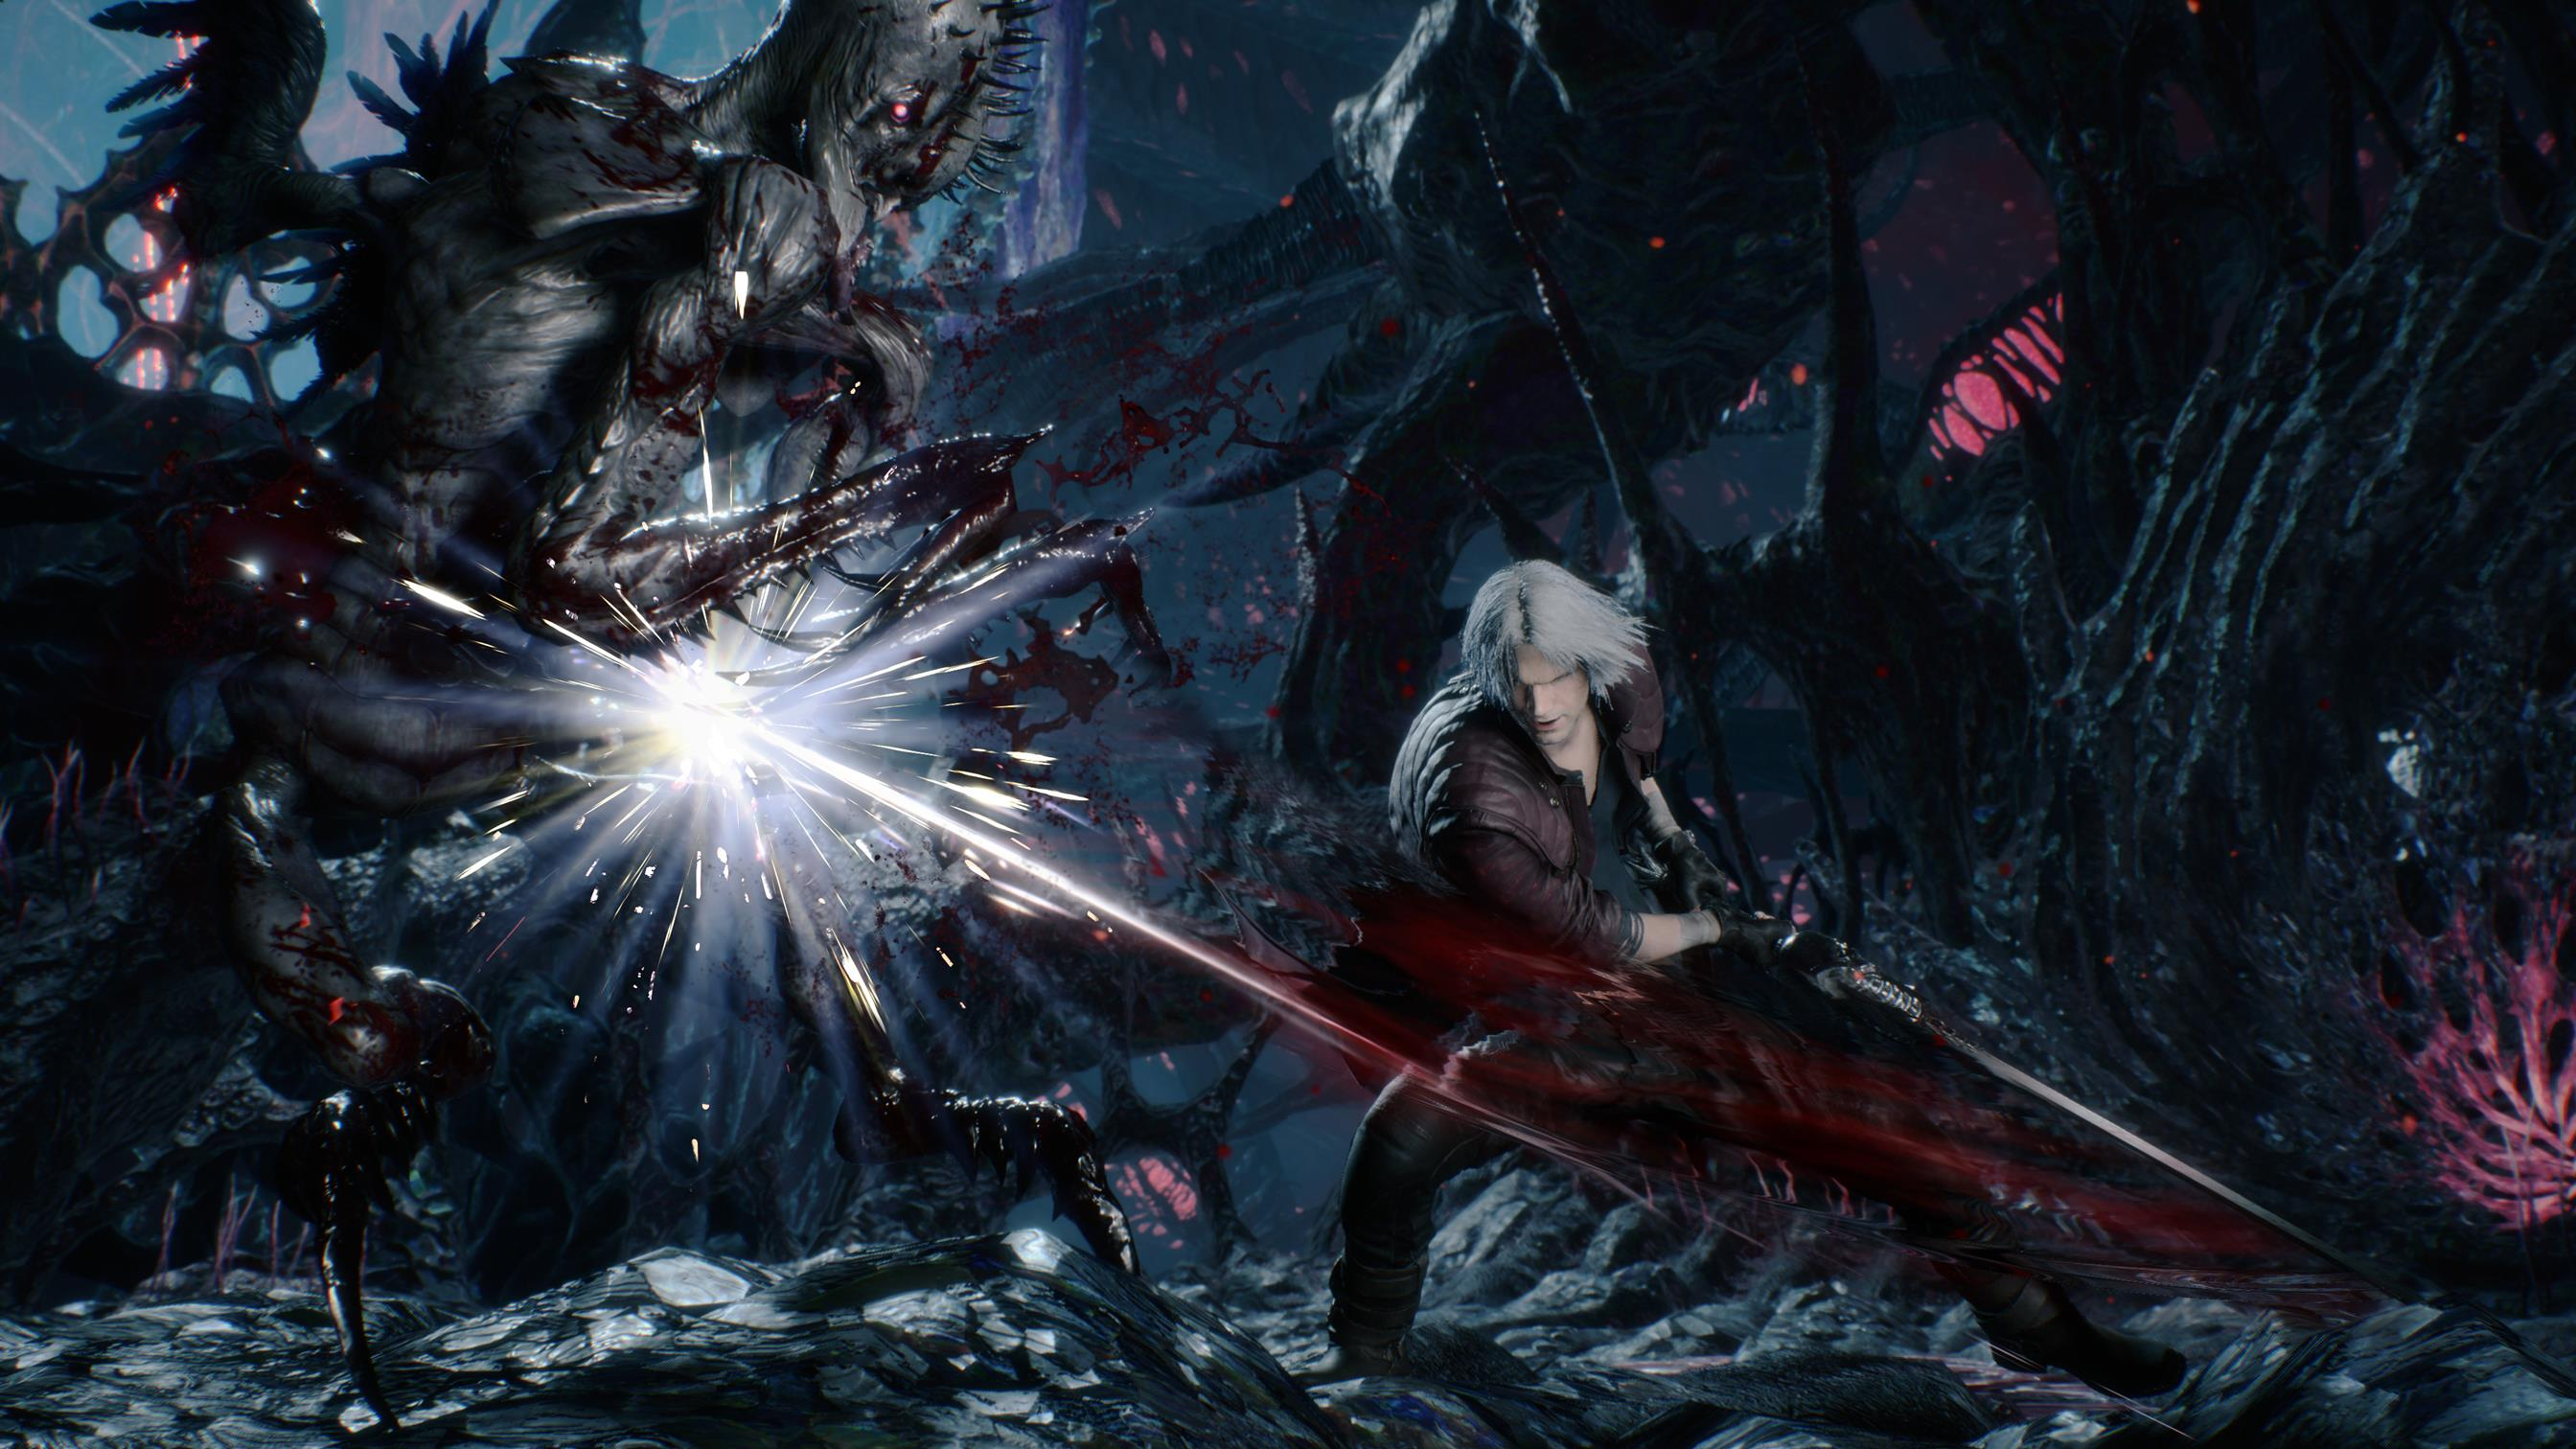 Devil May Cry 5 is selling its live action cutscenes as DLC